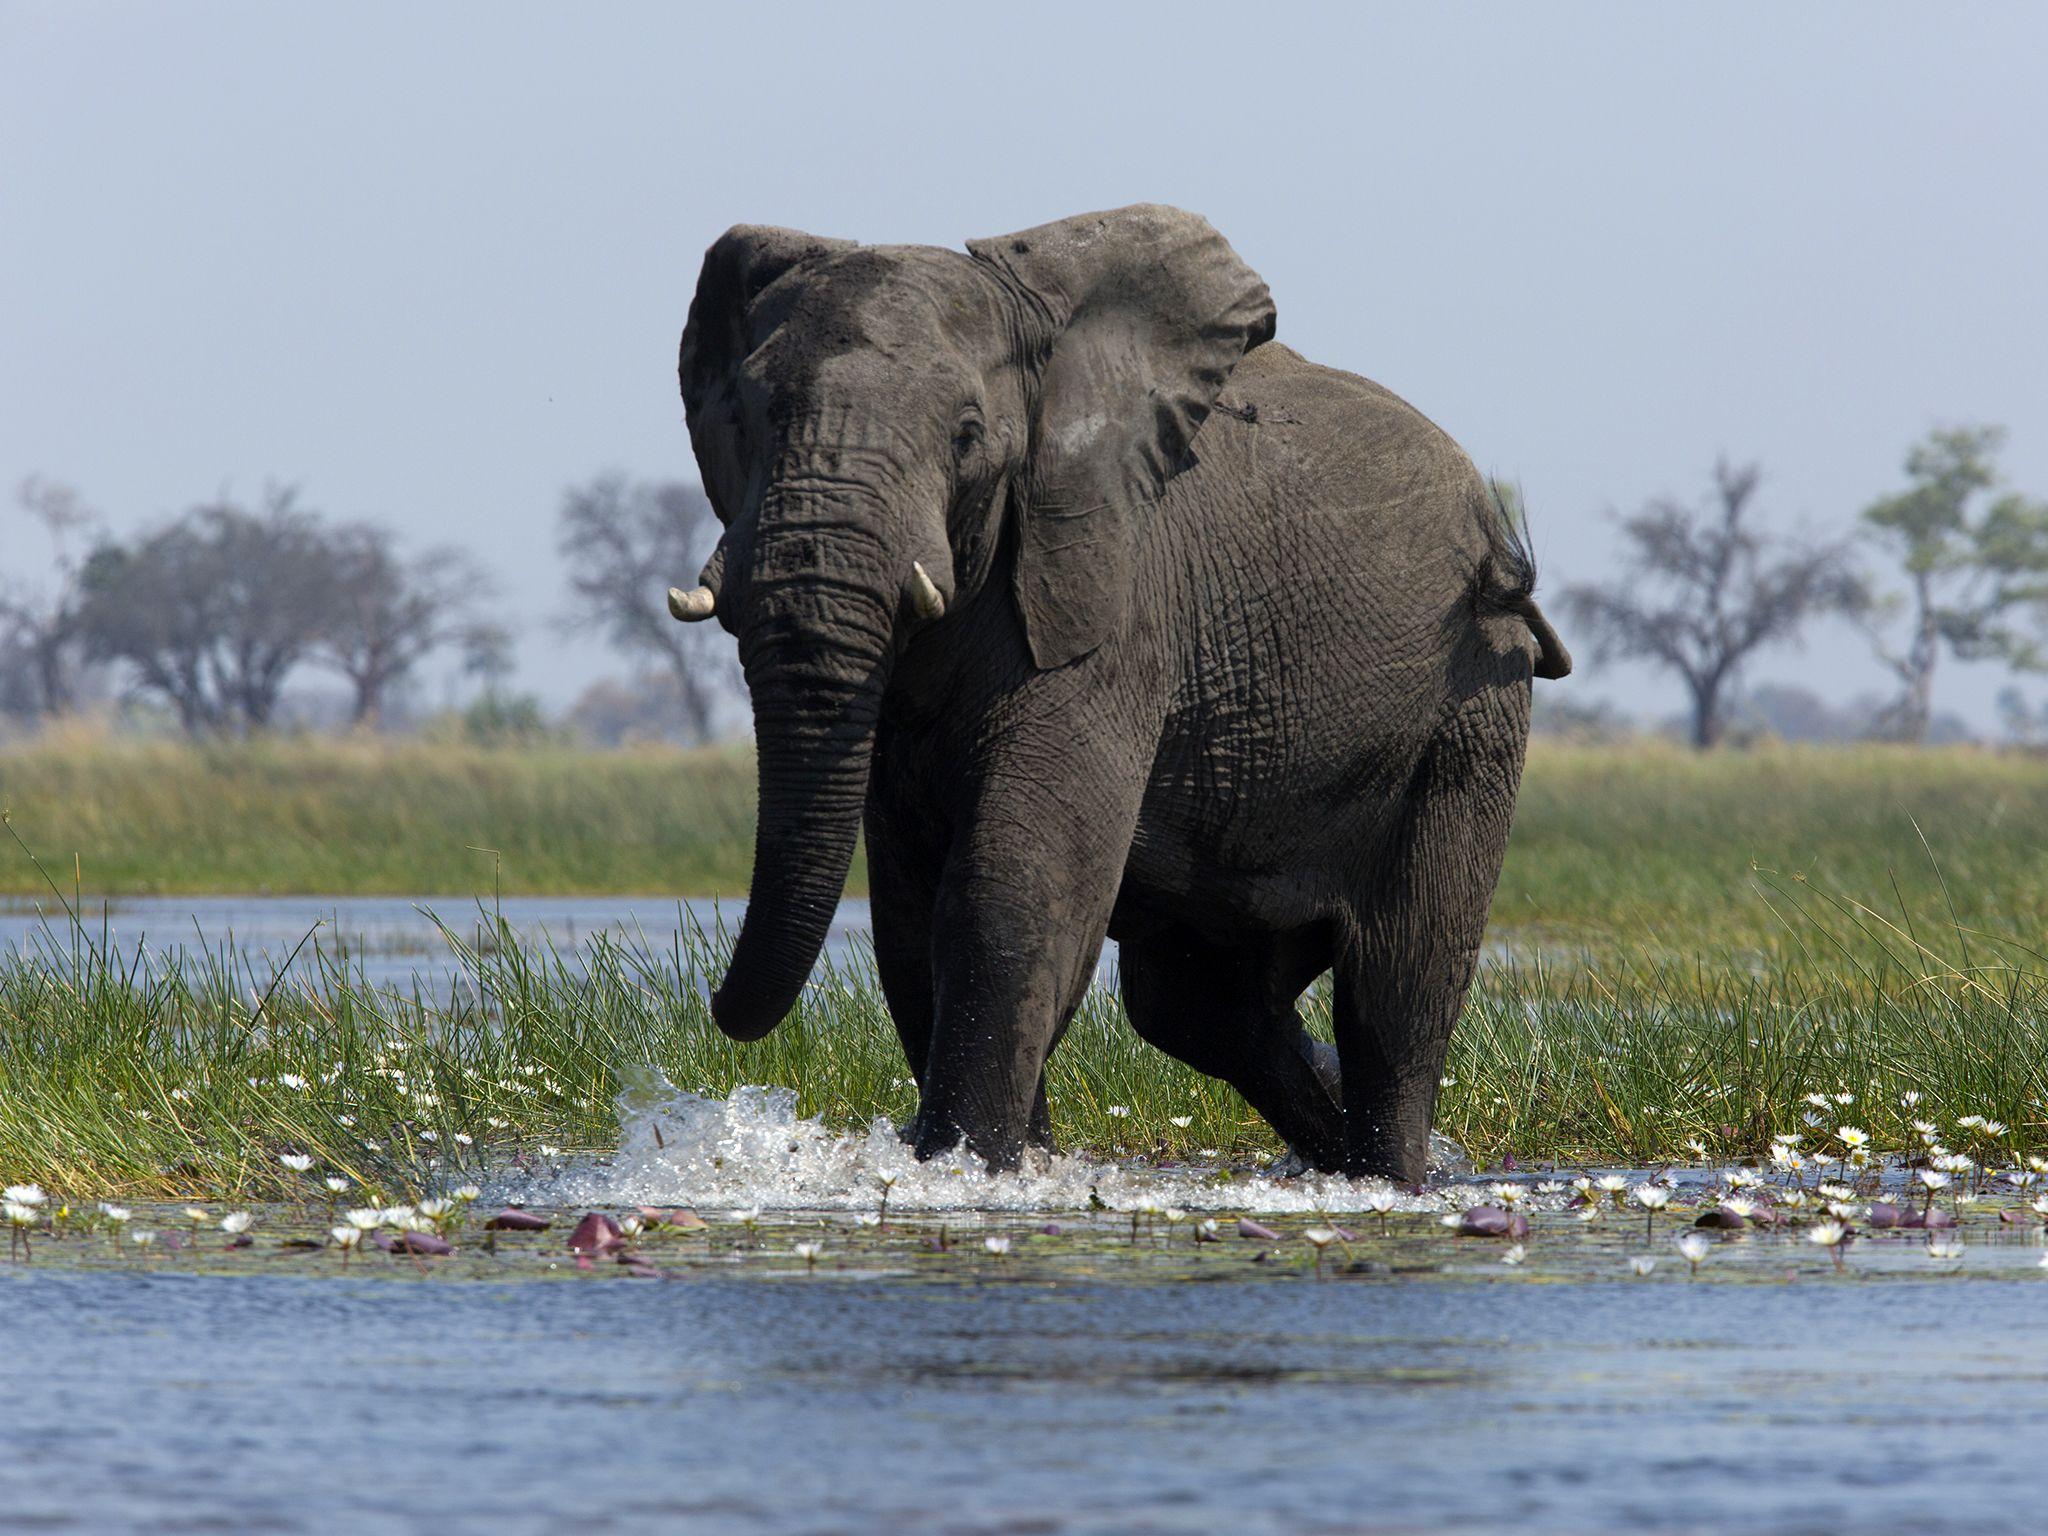 Botswana: Elephant walking into water, spotted on a river safari. This image is from Safari... [Photo of the day - 九月 2016]